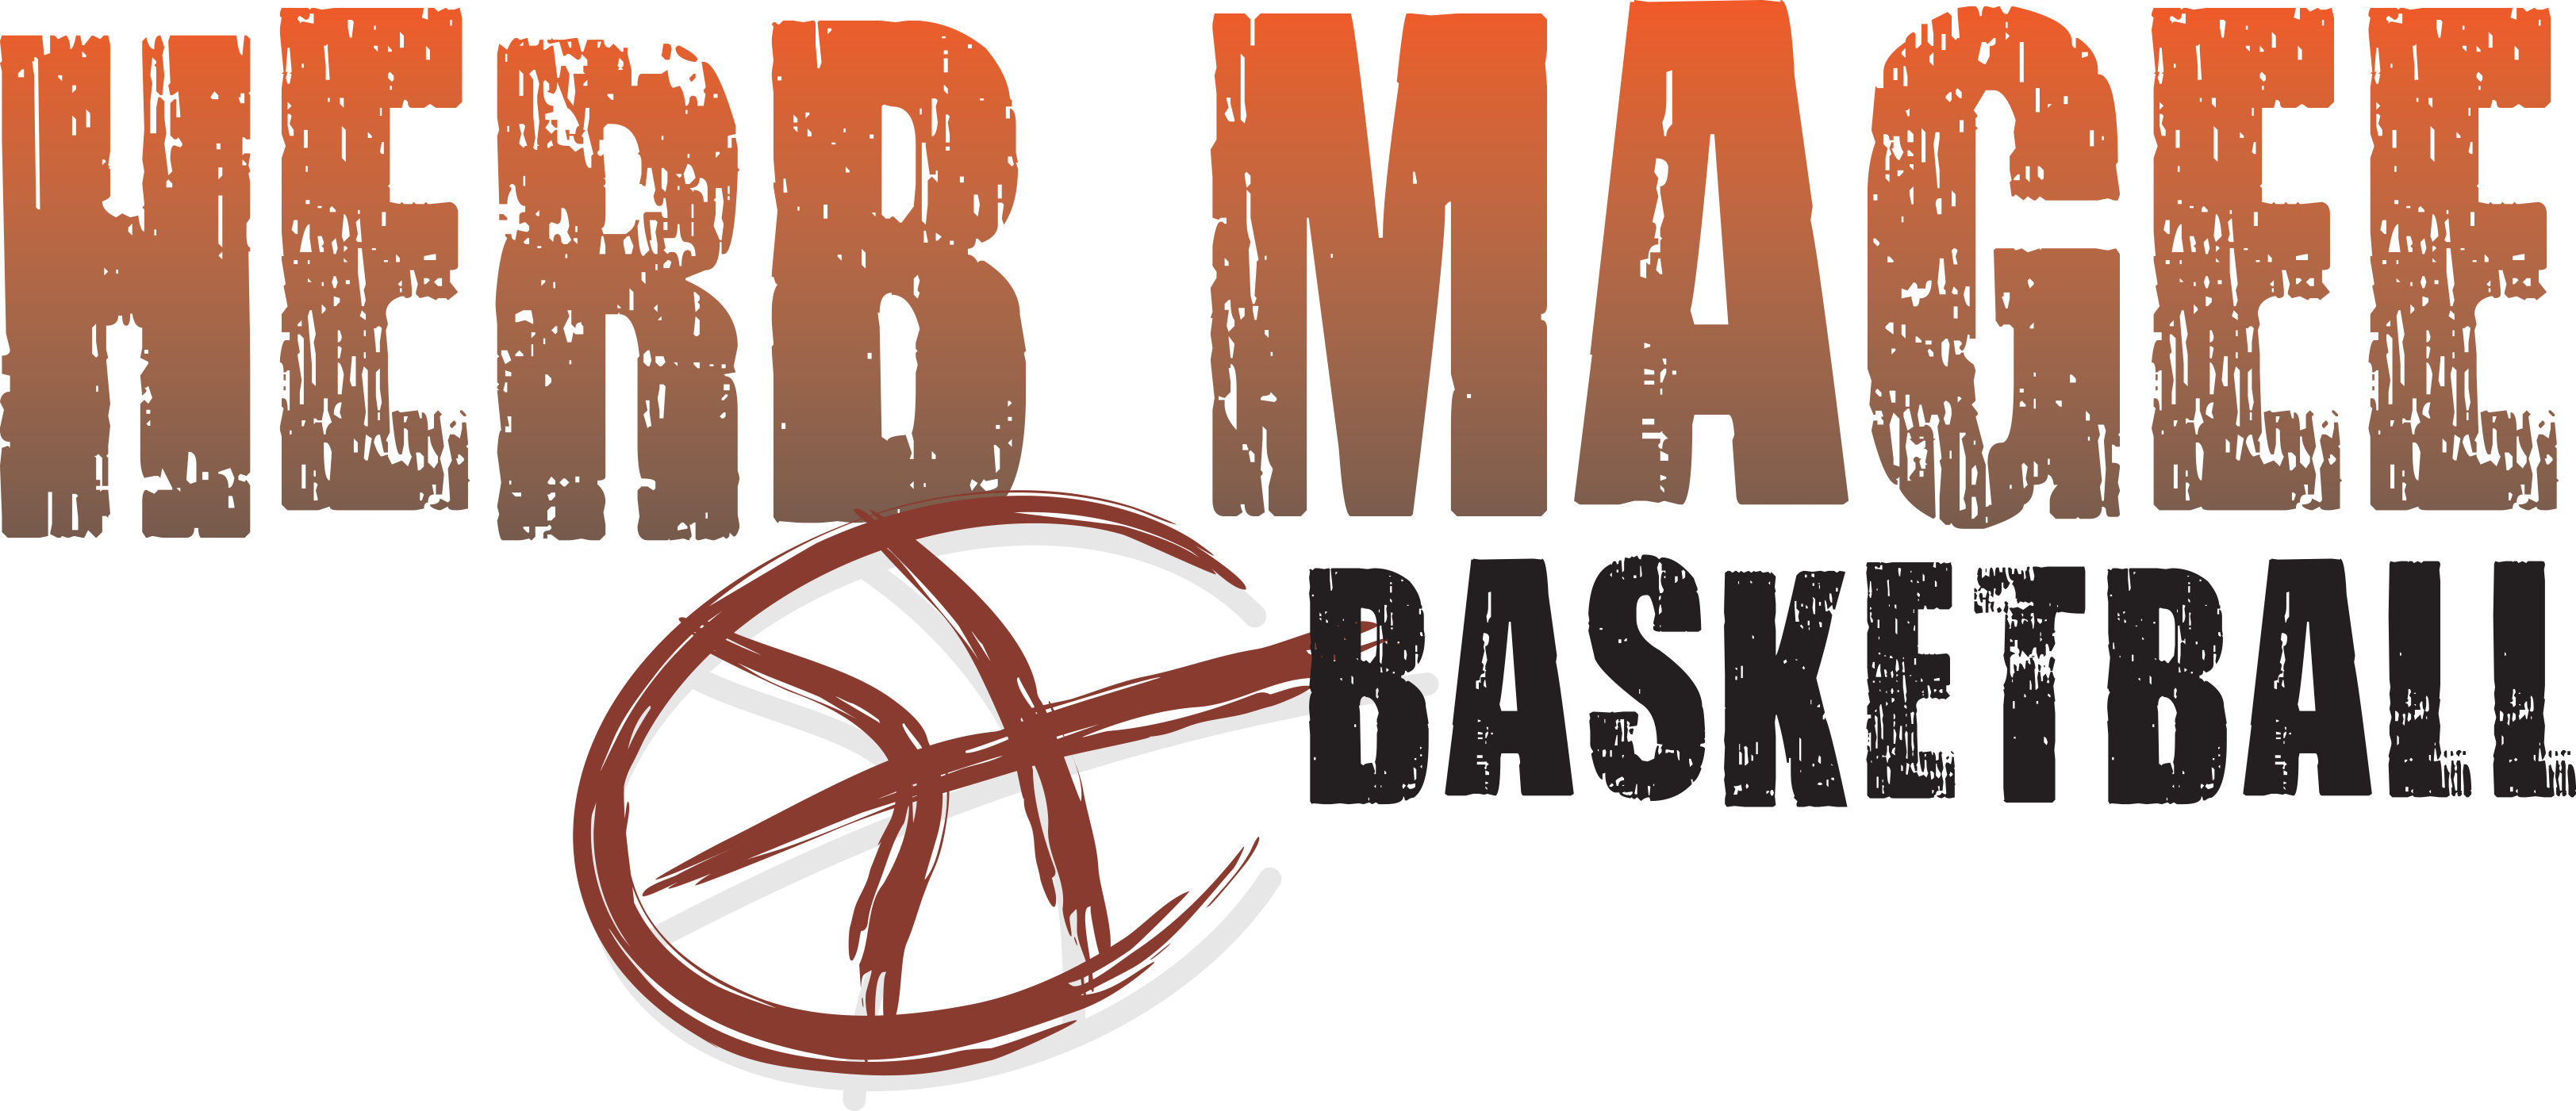 The official site for Basketball Coach Herb Magee